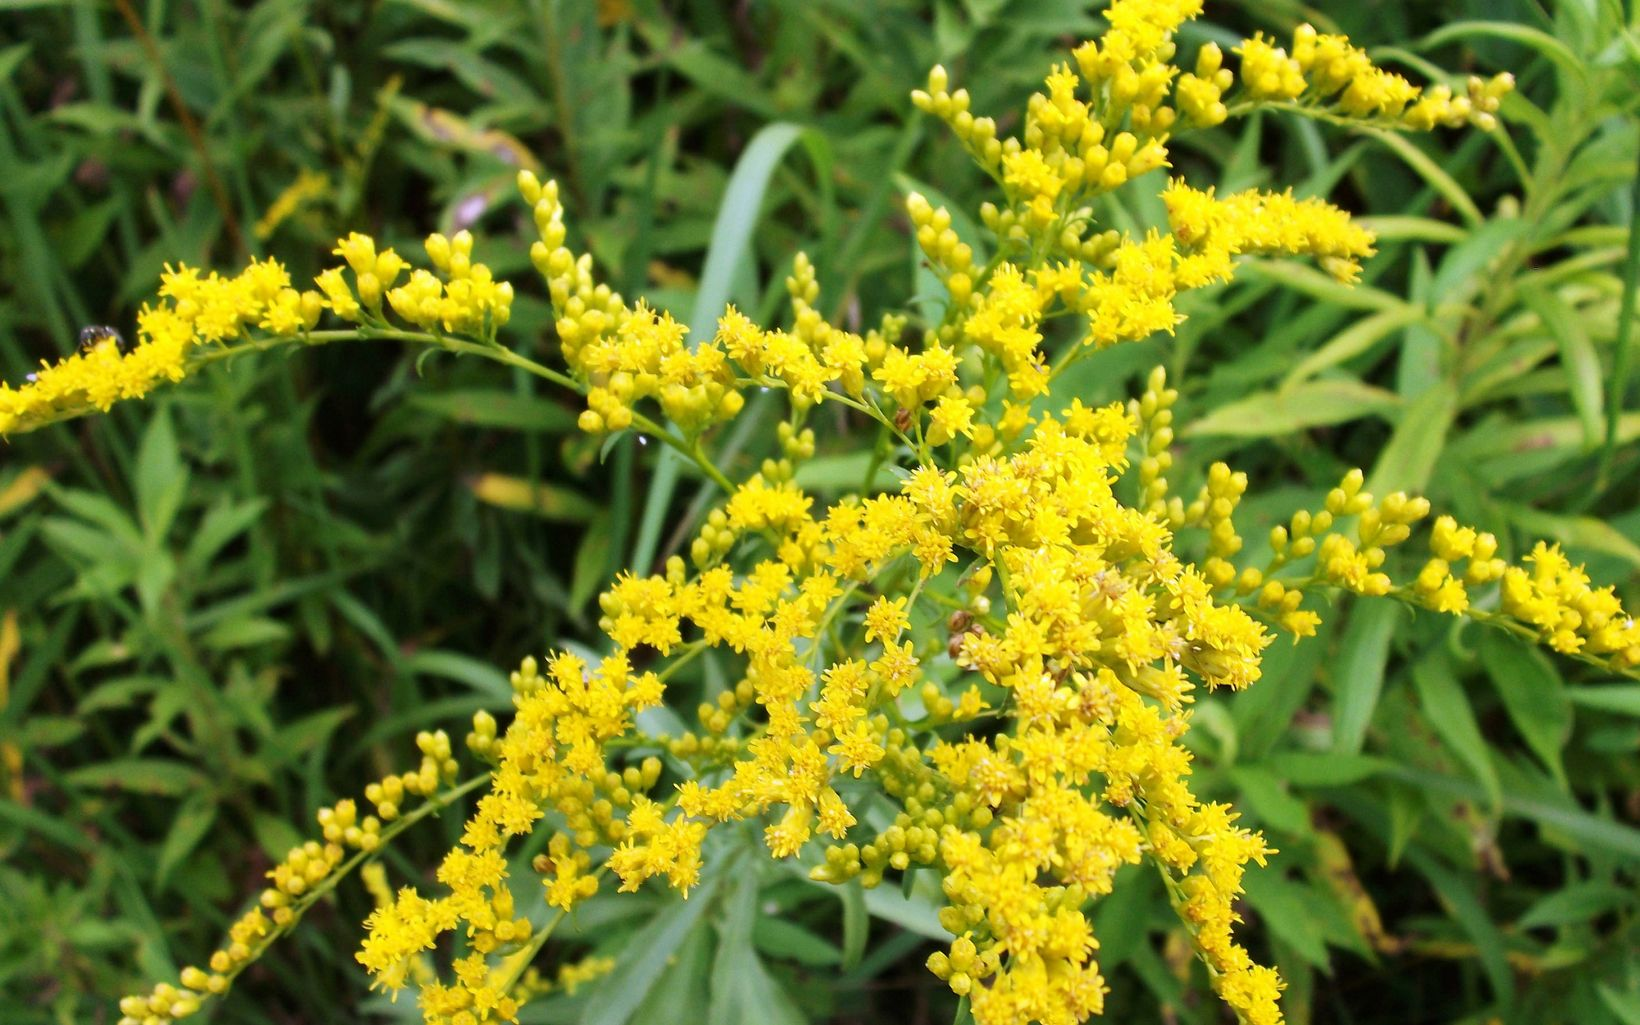 Small yellow flowers fill up a plant stem.